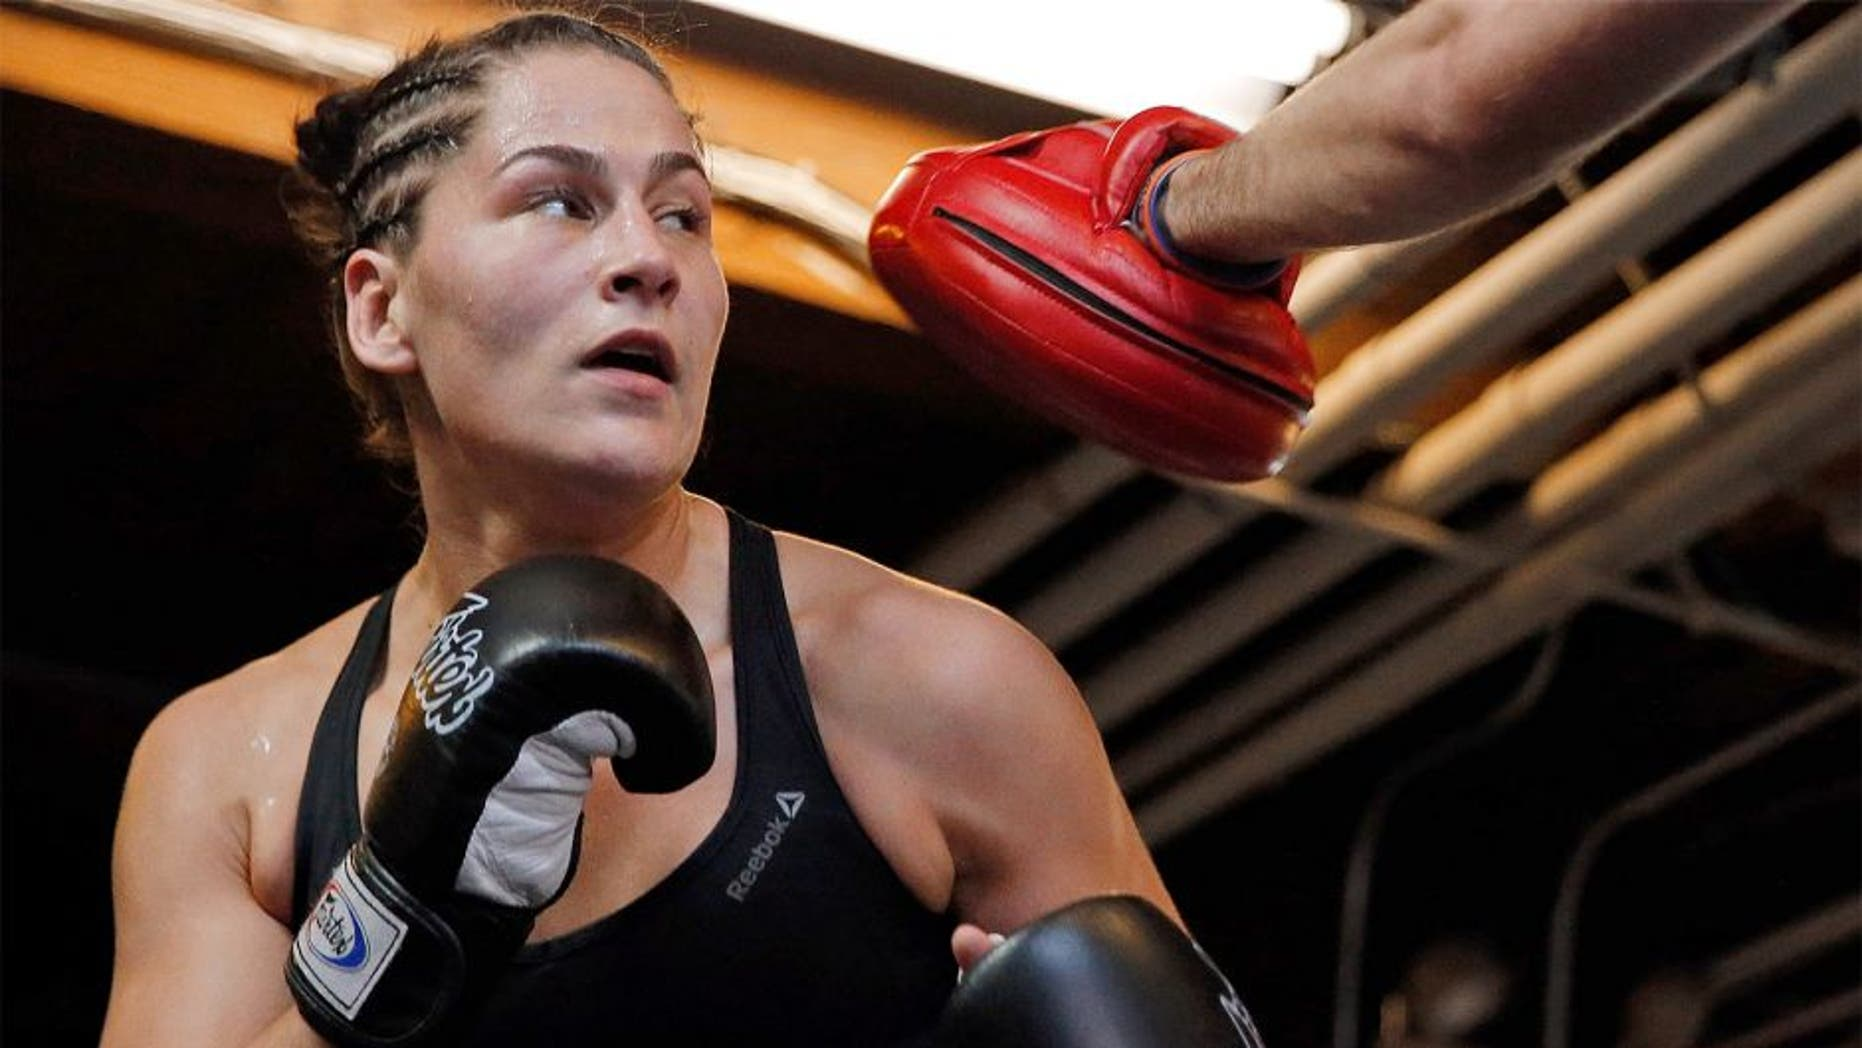 CHICAGO, IL - JULY 23: UFC women's No. 5 bantamweight contender Jessica Eye with boxing coach Alex Cooper during UFC Fight Night: Open Workouts at UFC Gym River North on July 23, 2015 in Chicago, Illinois. (Photo by Jon Durr/Zuffa LLC/Zuffa LLC via Getty Images)